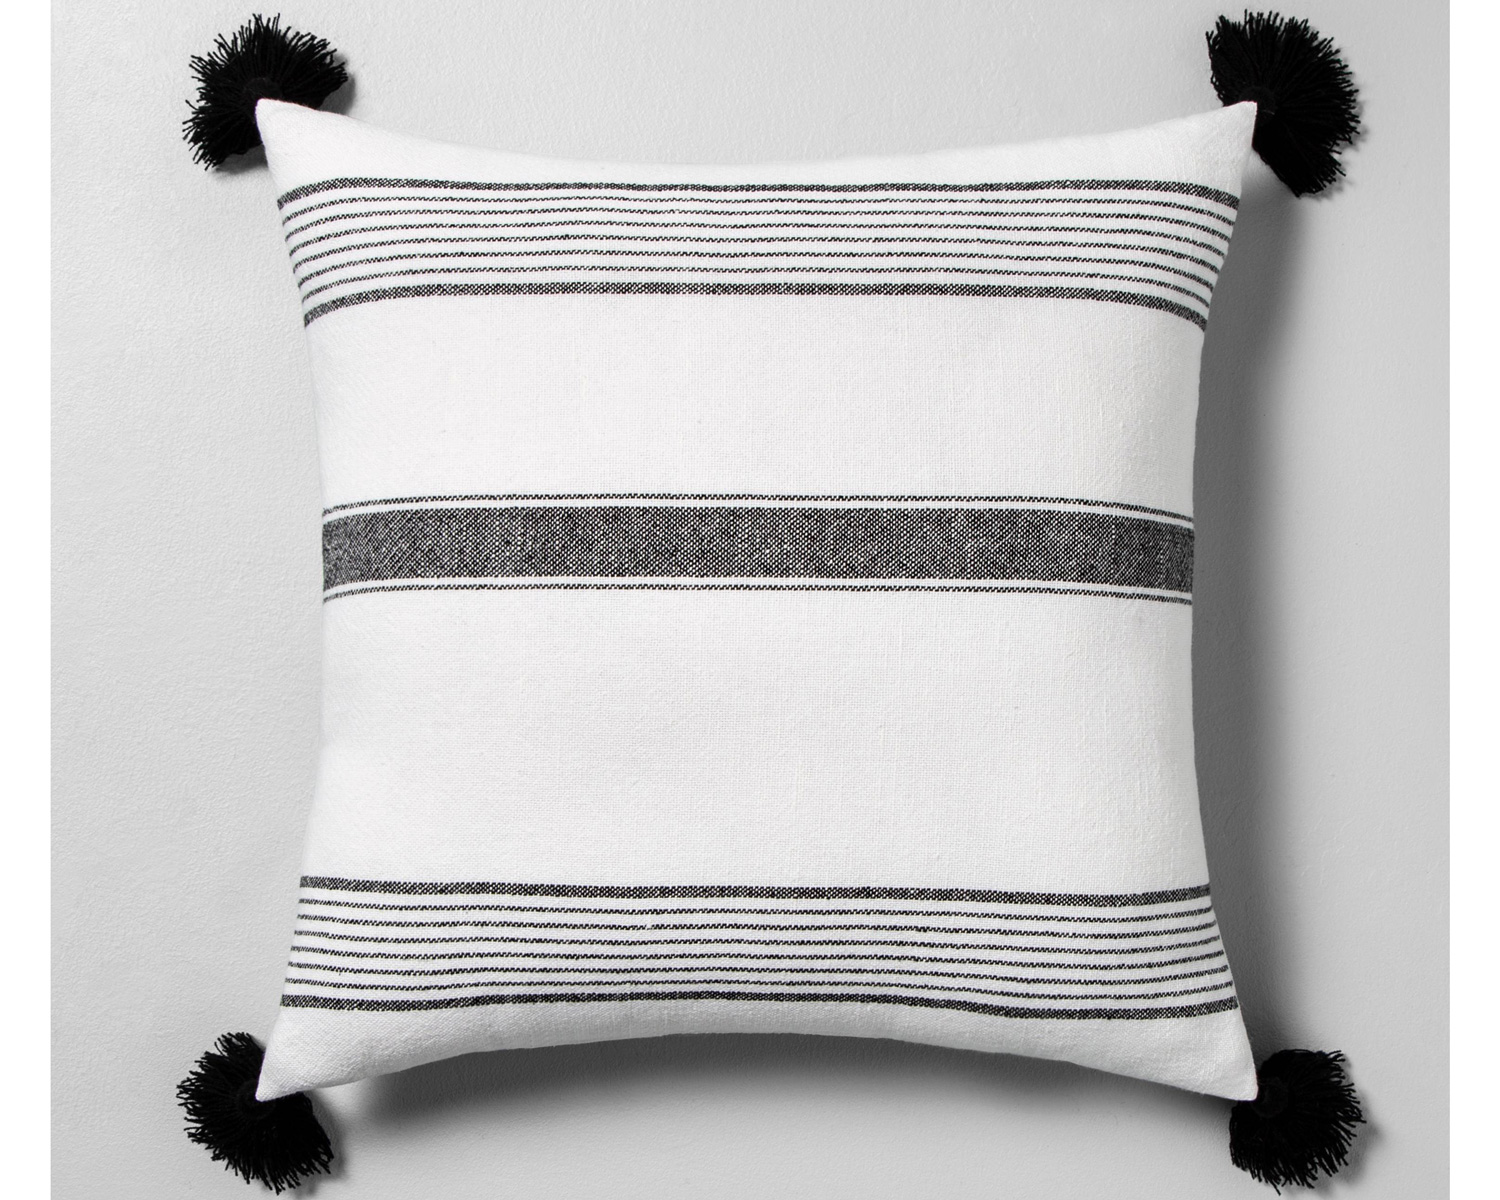 White and gray striped pillow